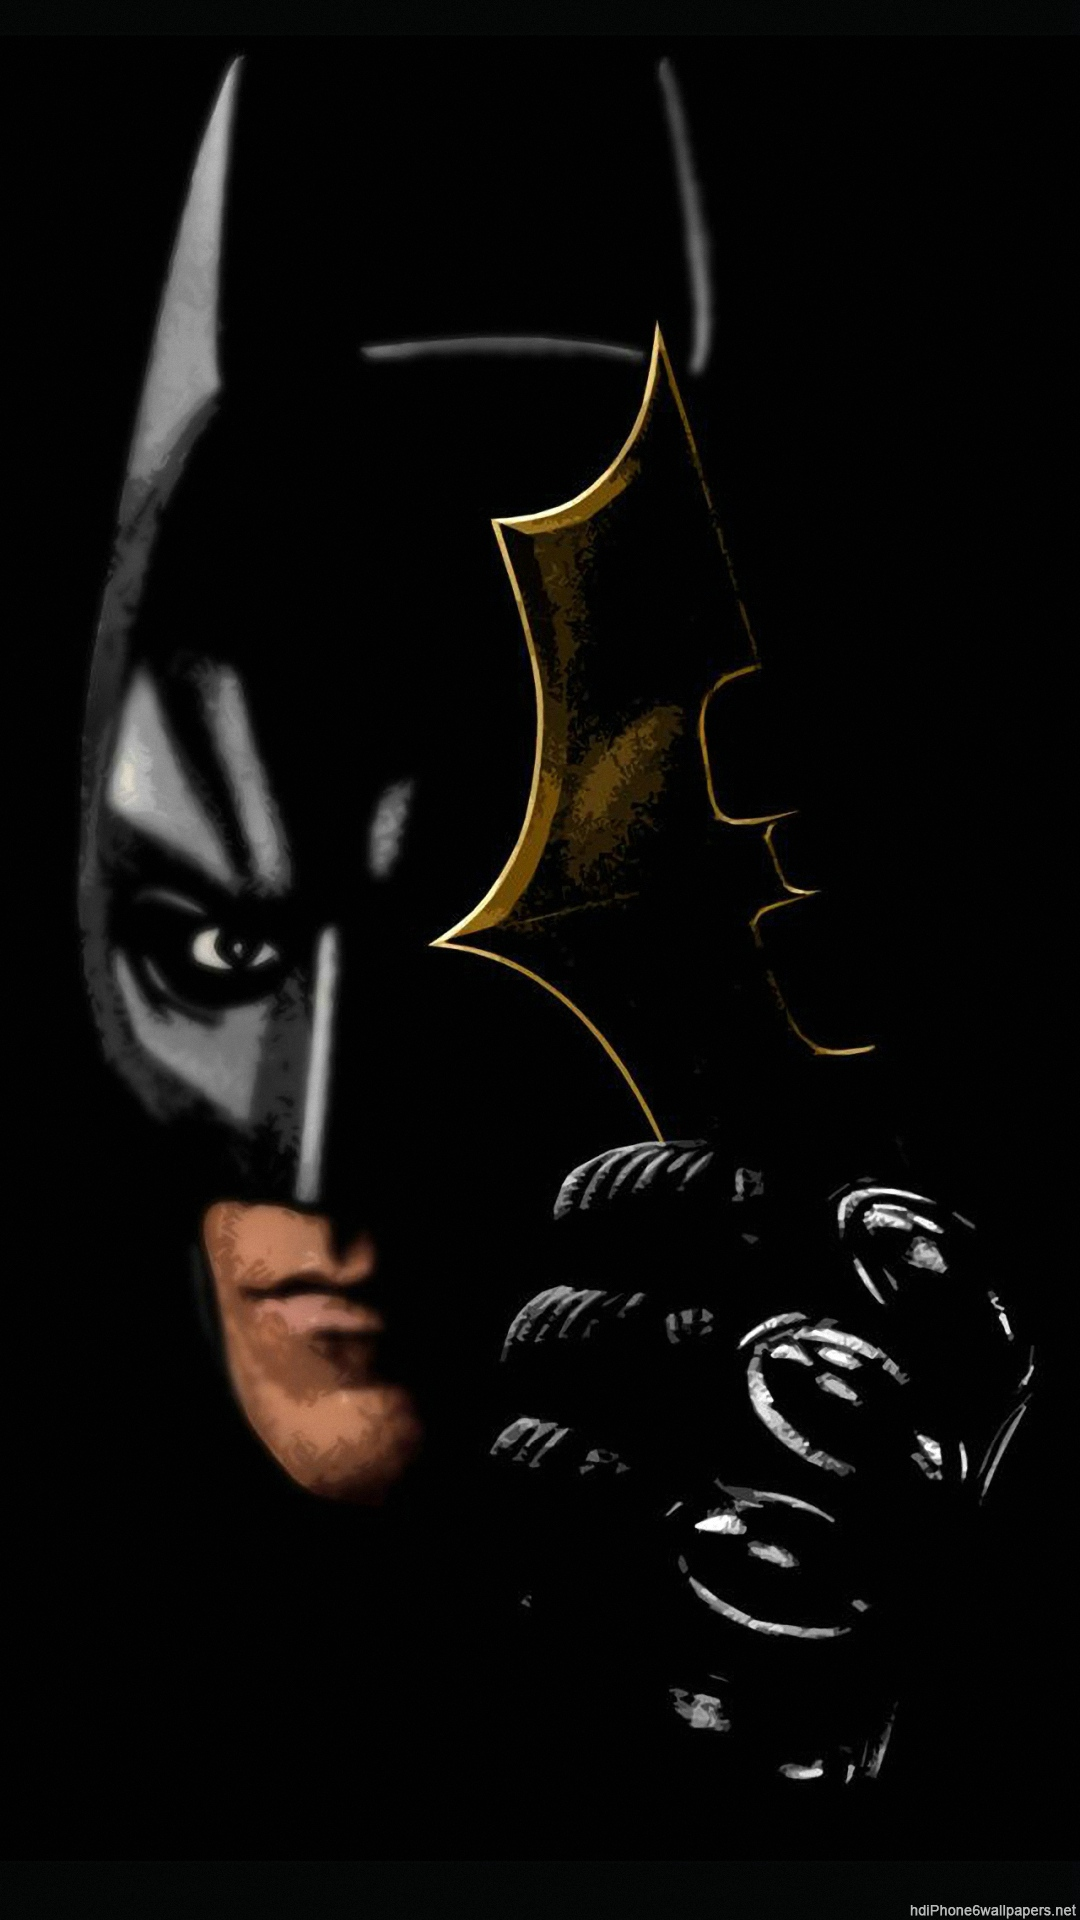 Batman Hd Wallpaper For Iphone Wallpapersafari